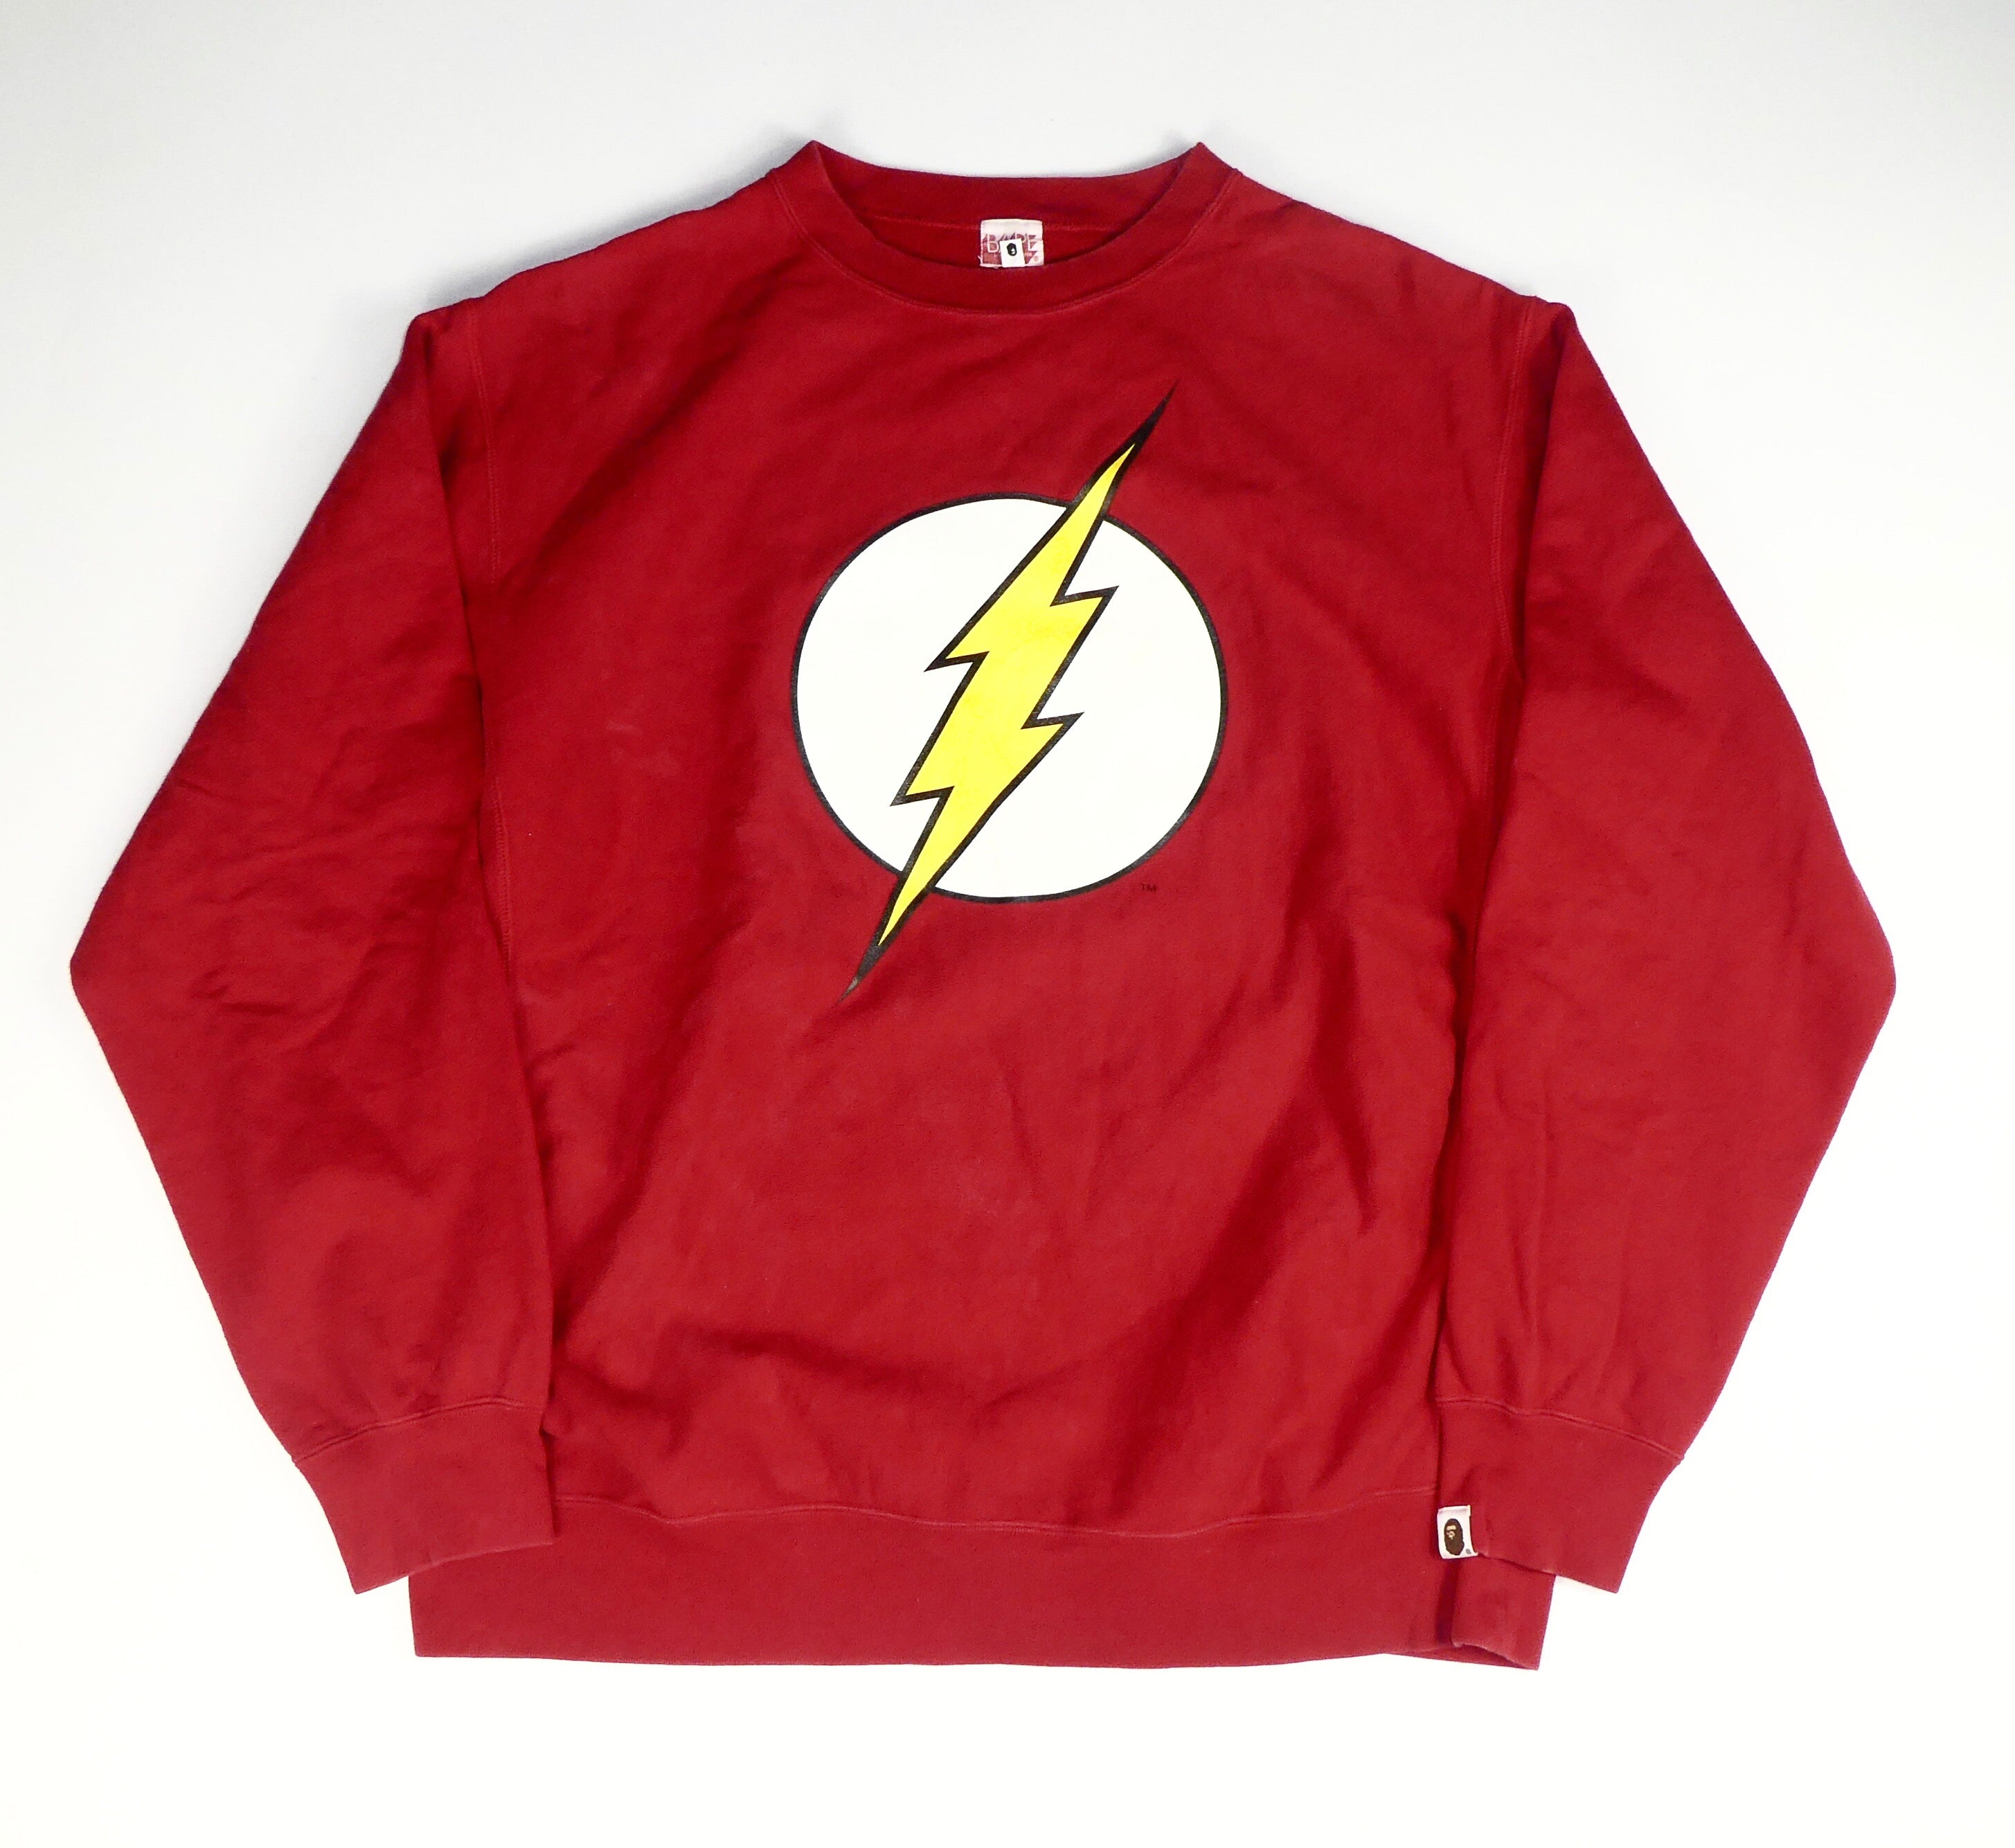 Bape x DC Comics Flash Sweatshirt - XL